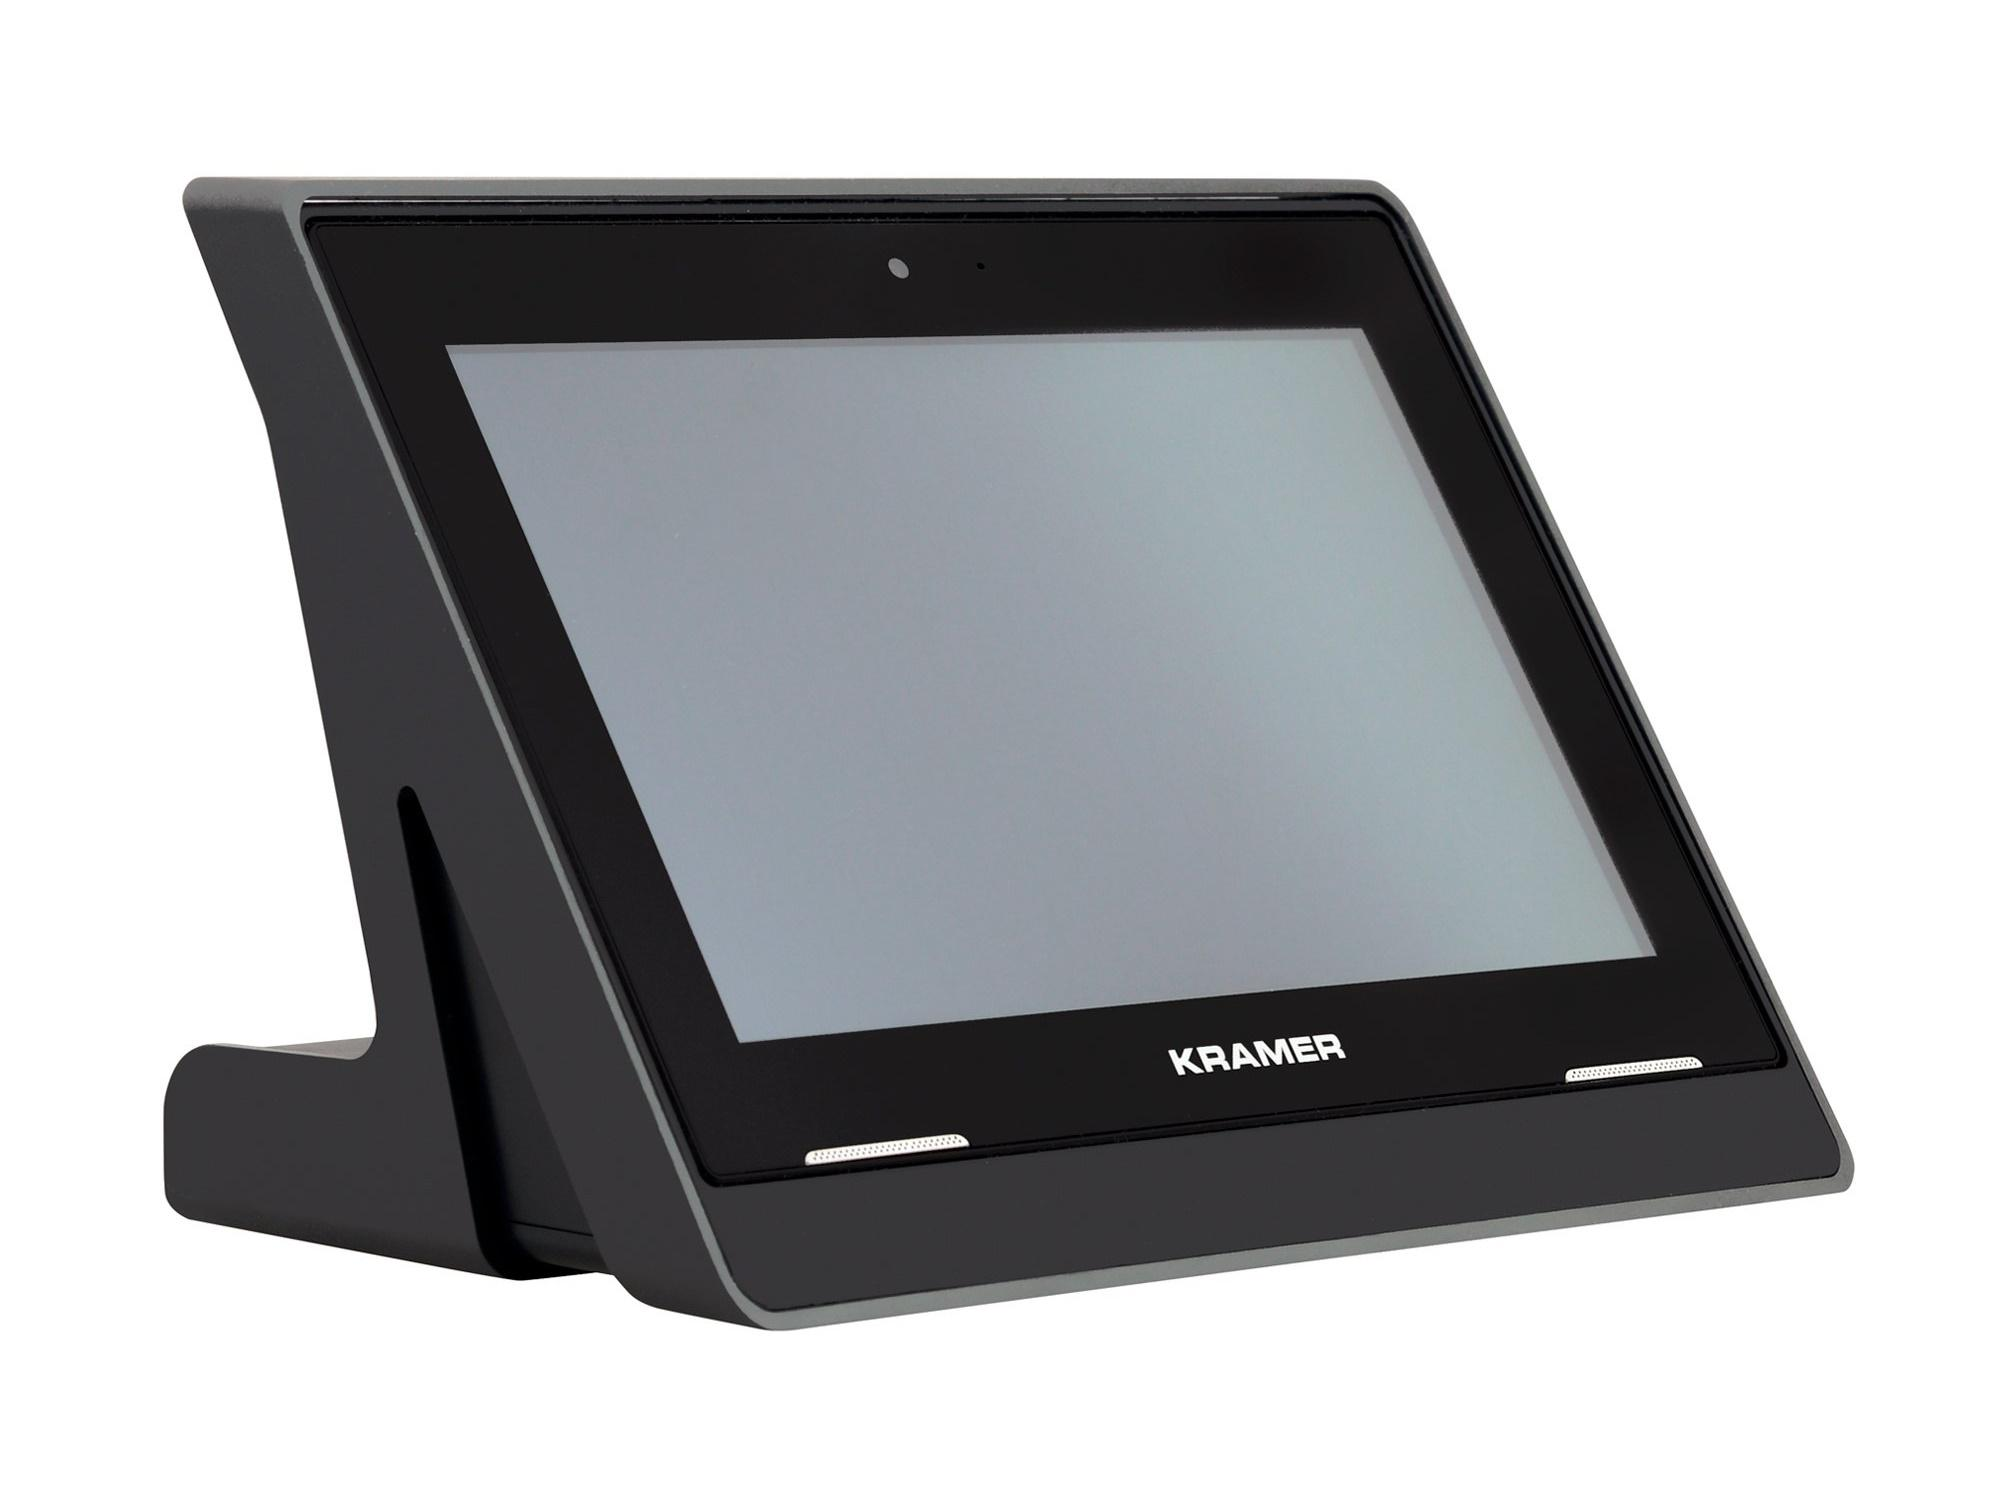 Details about Kramer KT 107S Secured 7 Inch Wall Table Mount PoE Touch Panel